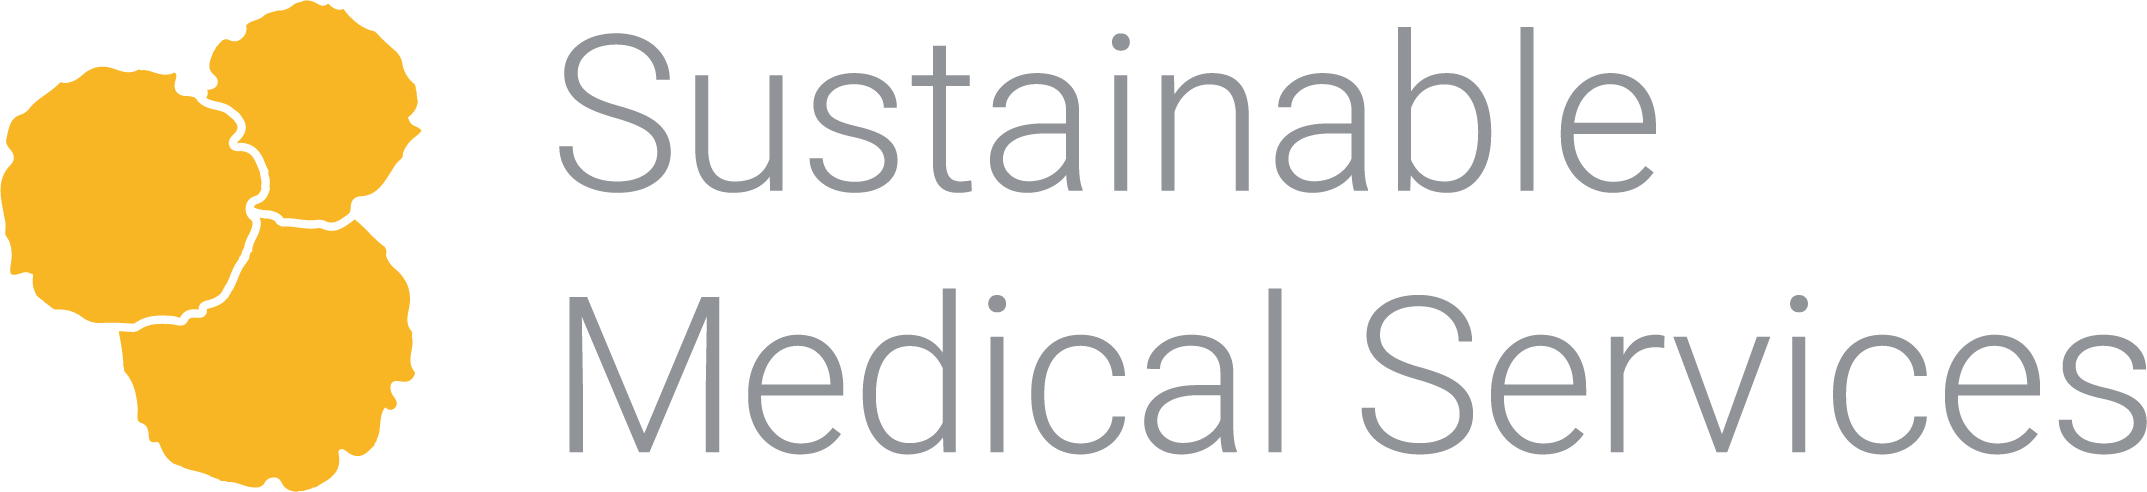 sustainable medical services